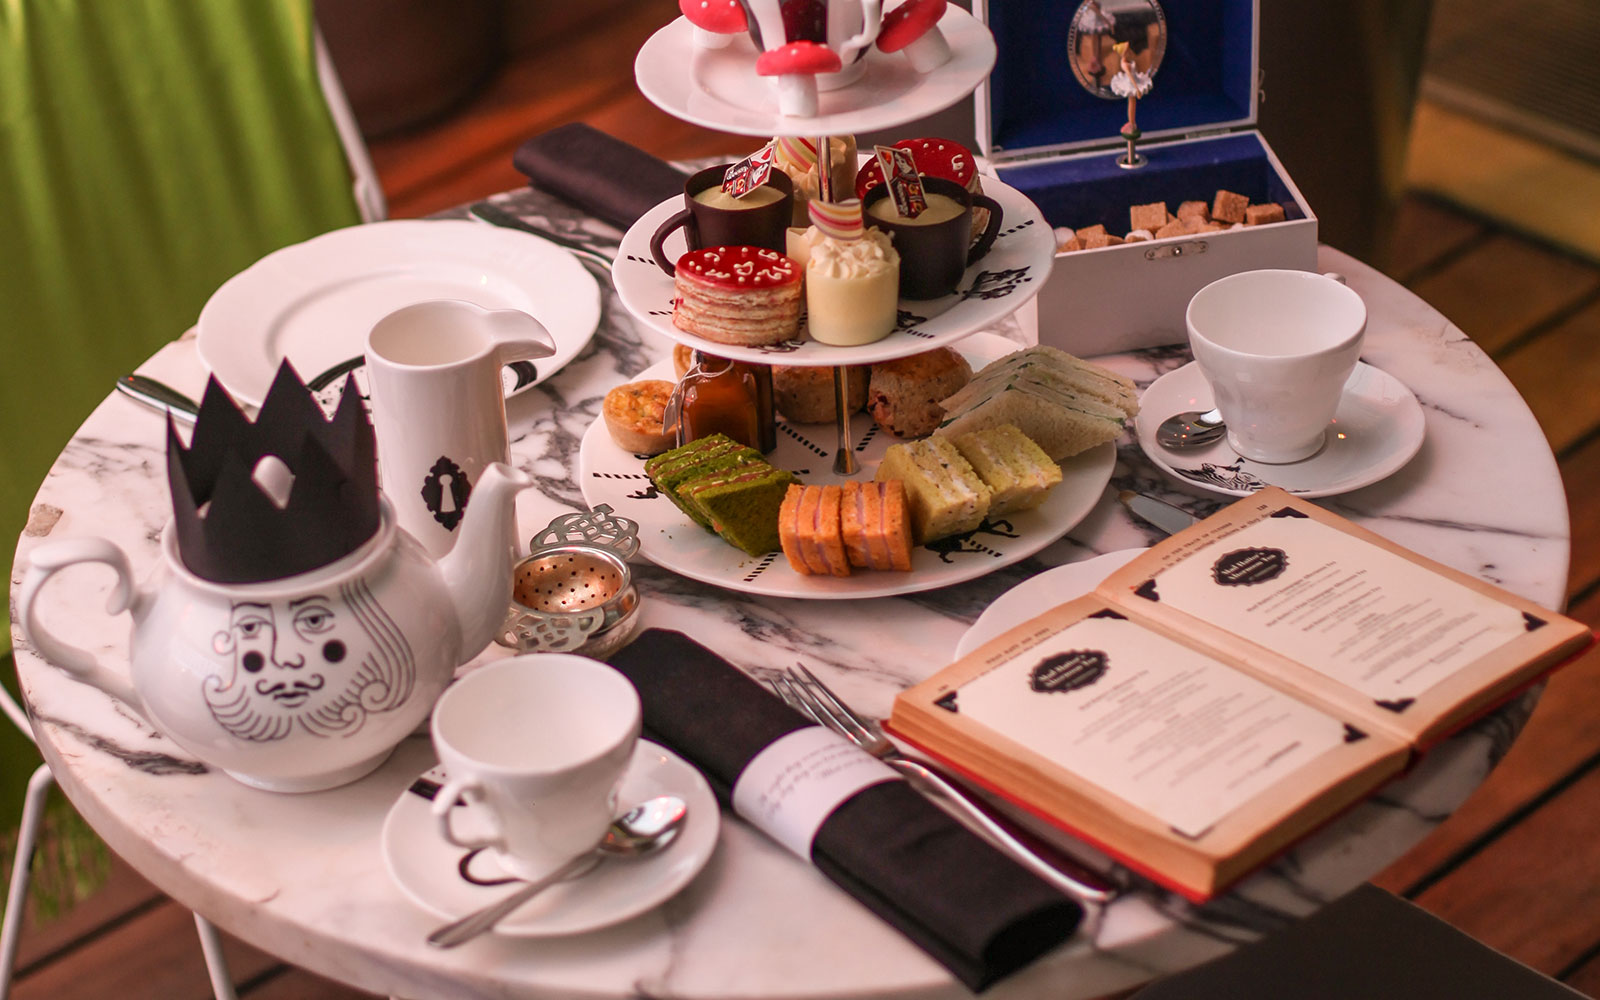 Mad Hatter's Afternoon Tea at the Sanderson Hotel, London